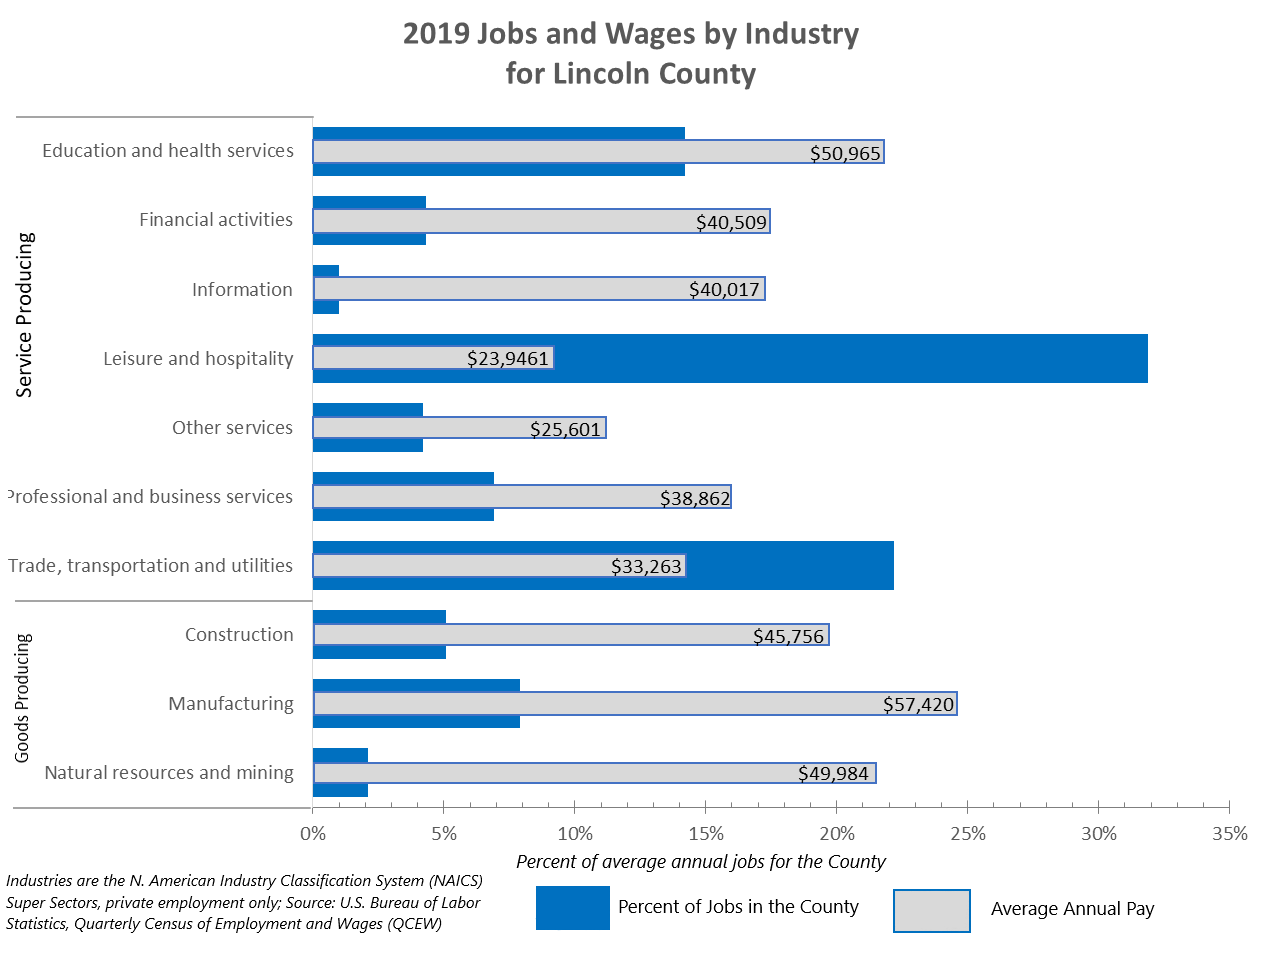 2019 Jobs and Wages by Industry for Lincoln County